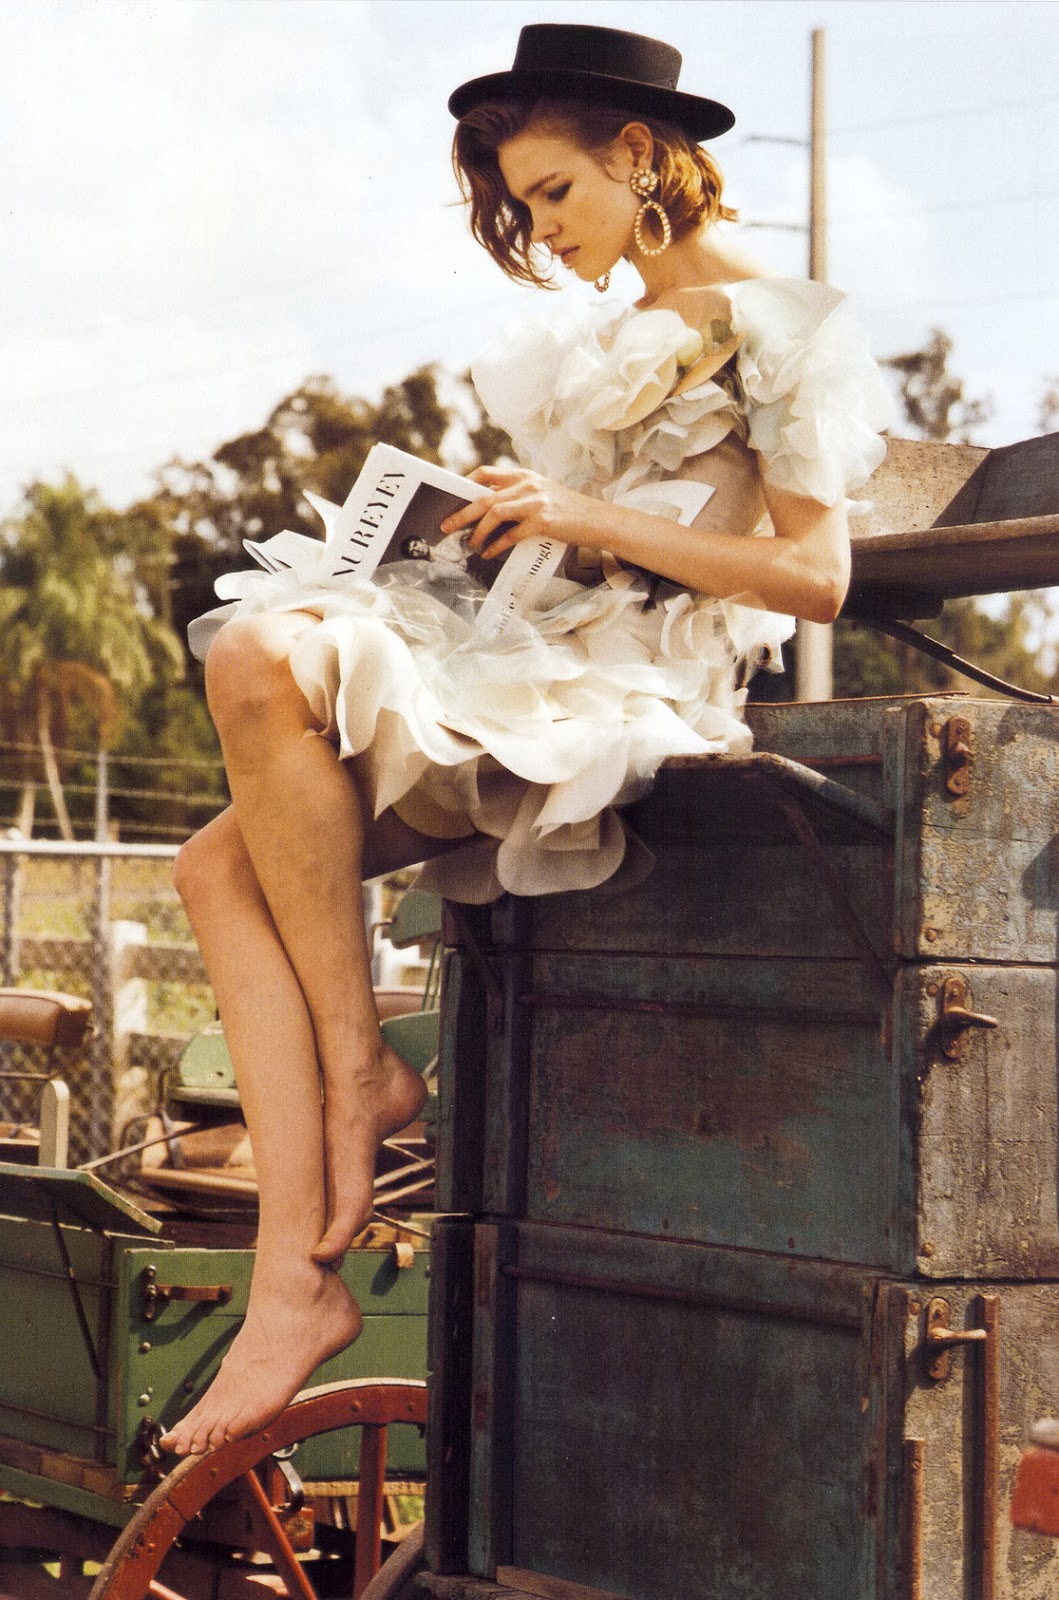 Natalia Vodianova in Vogue Italia March 2008 (photography: Bruce Weber, styling: Anne Christensen)